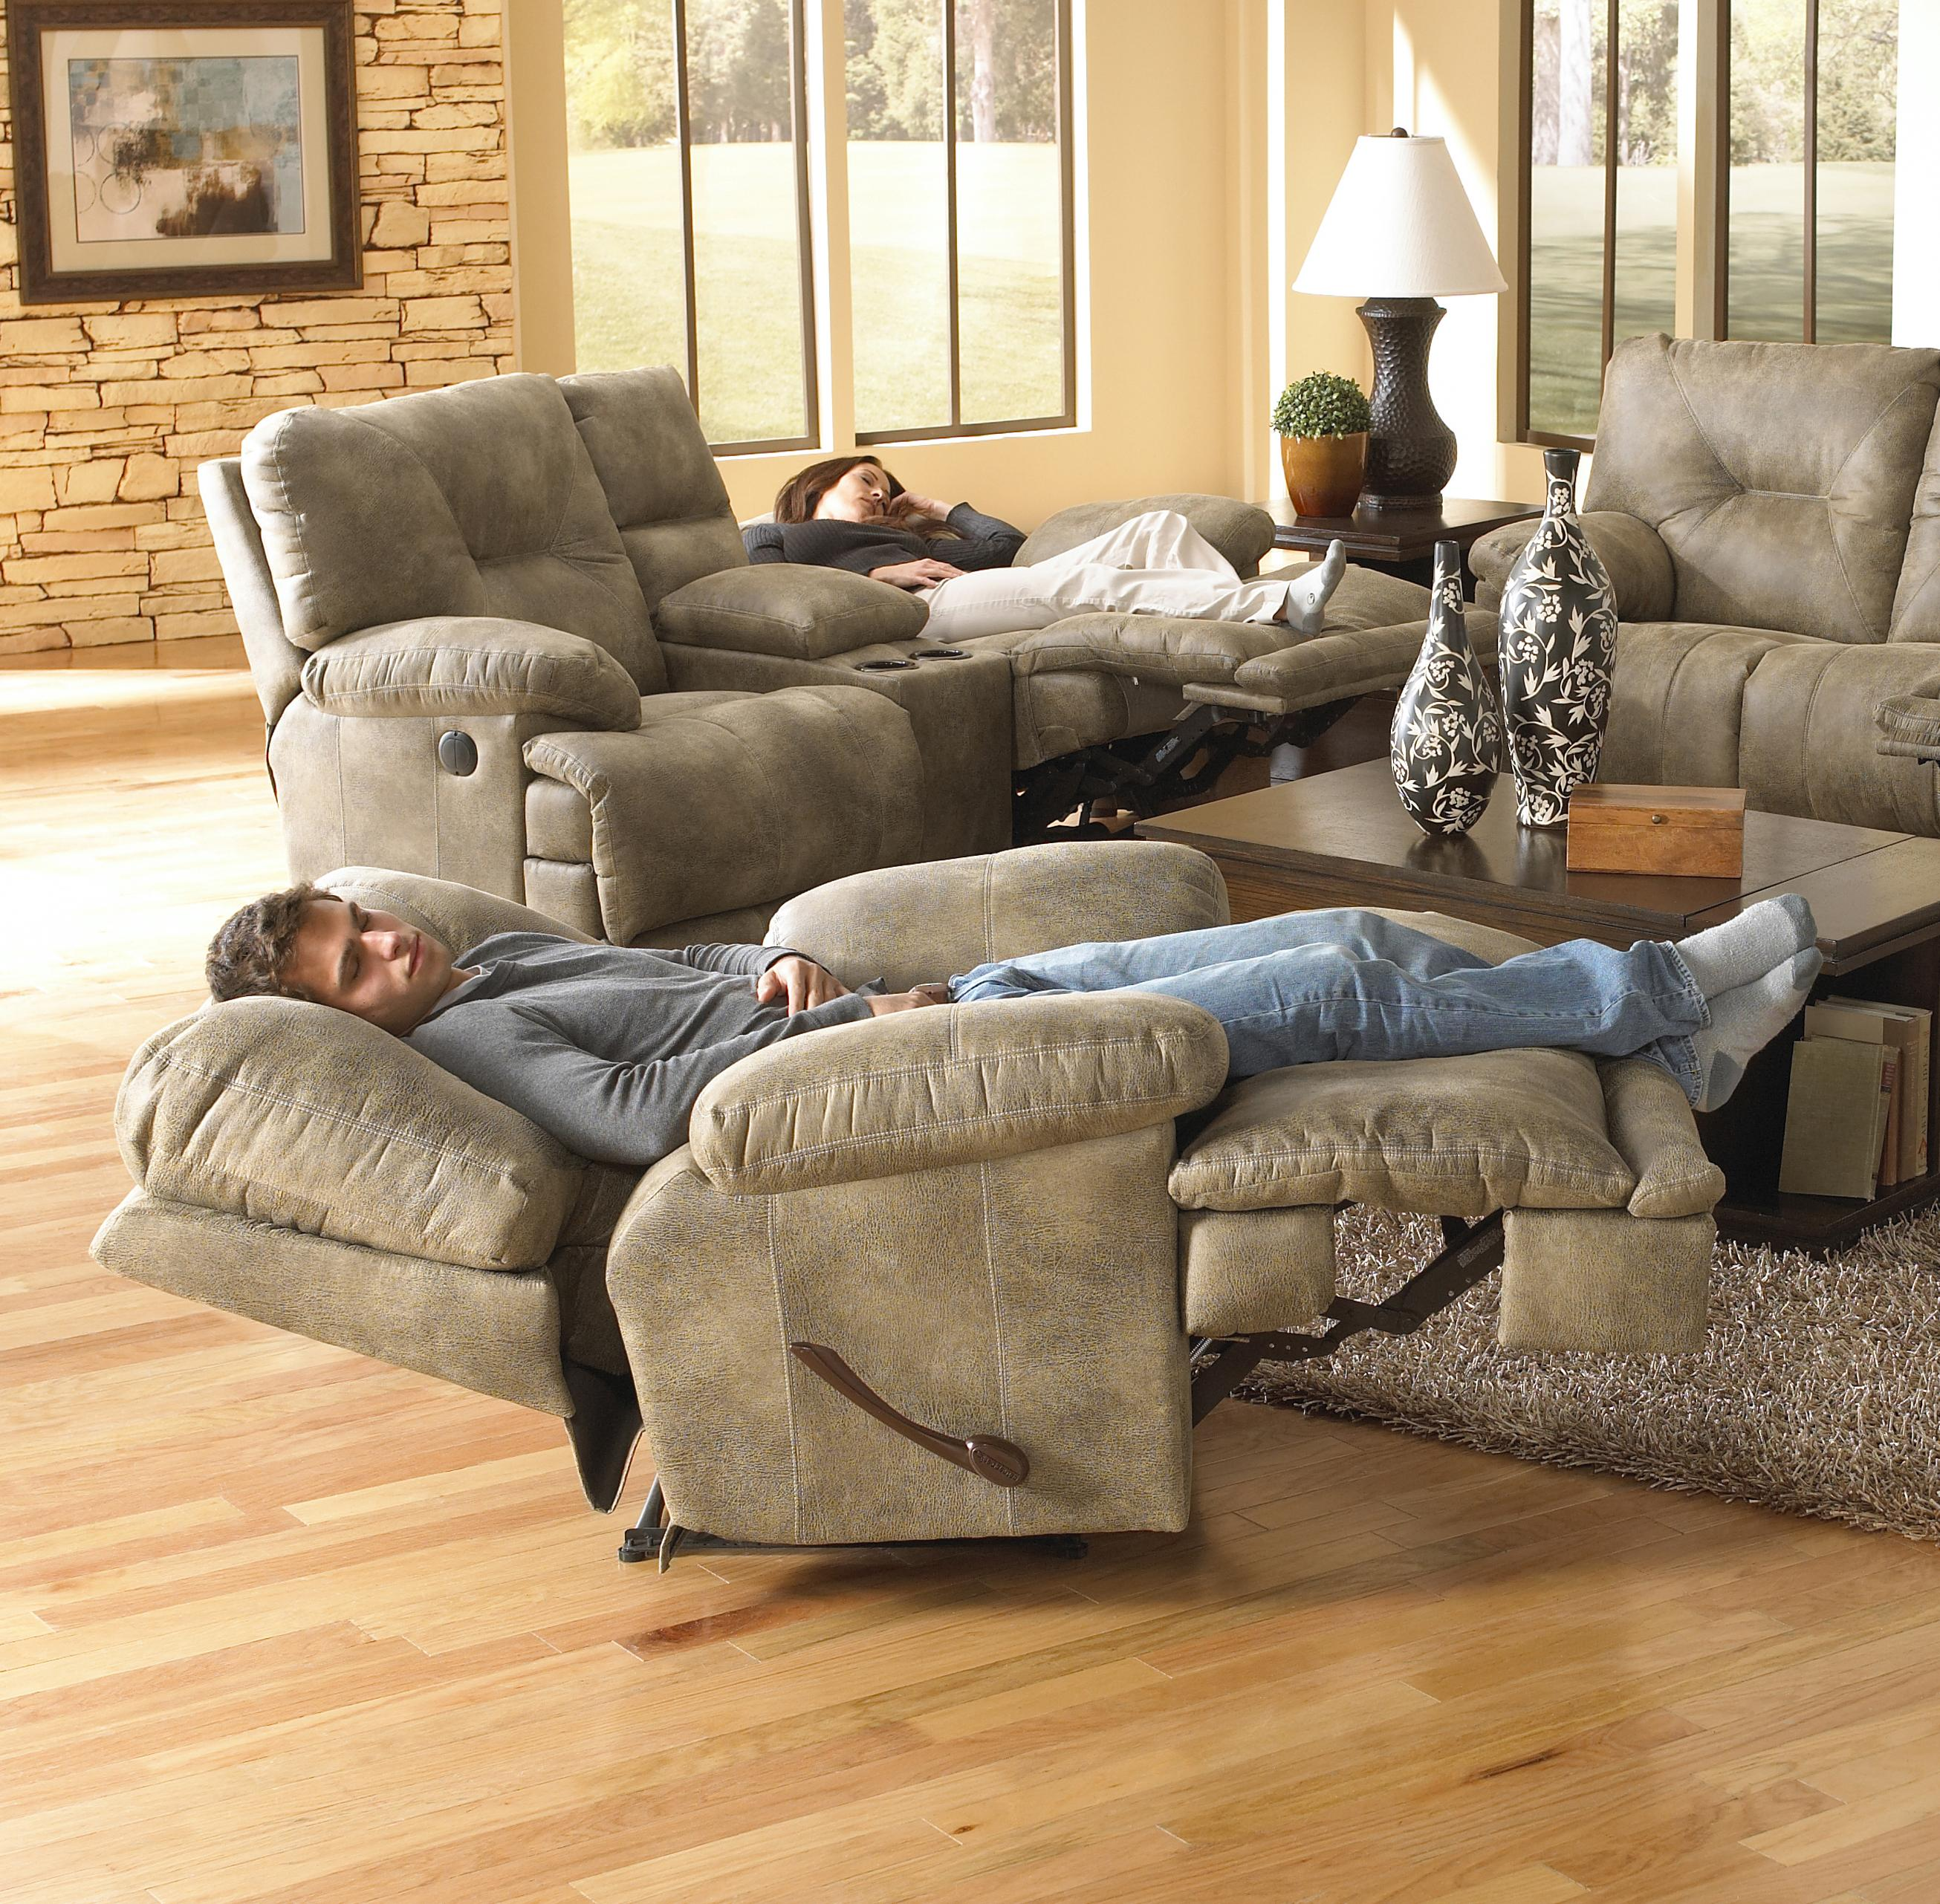 Single Seat Lay Flat Recliner By Catnapper Wolf And Gardiner Wolf Furniture